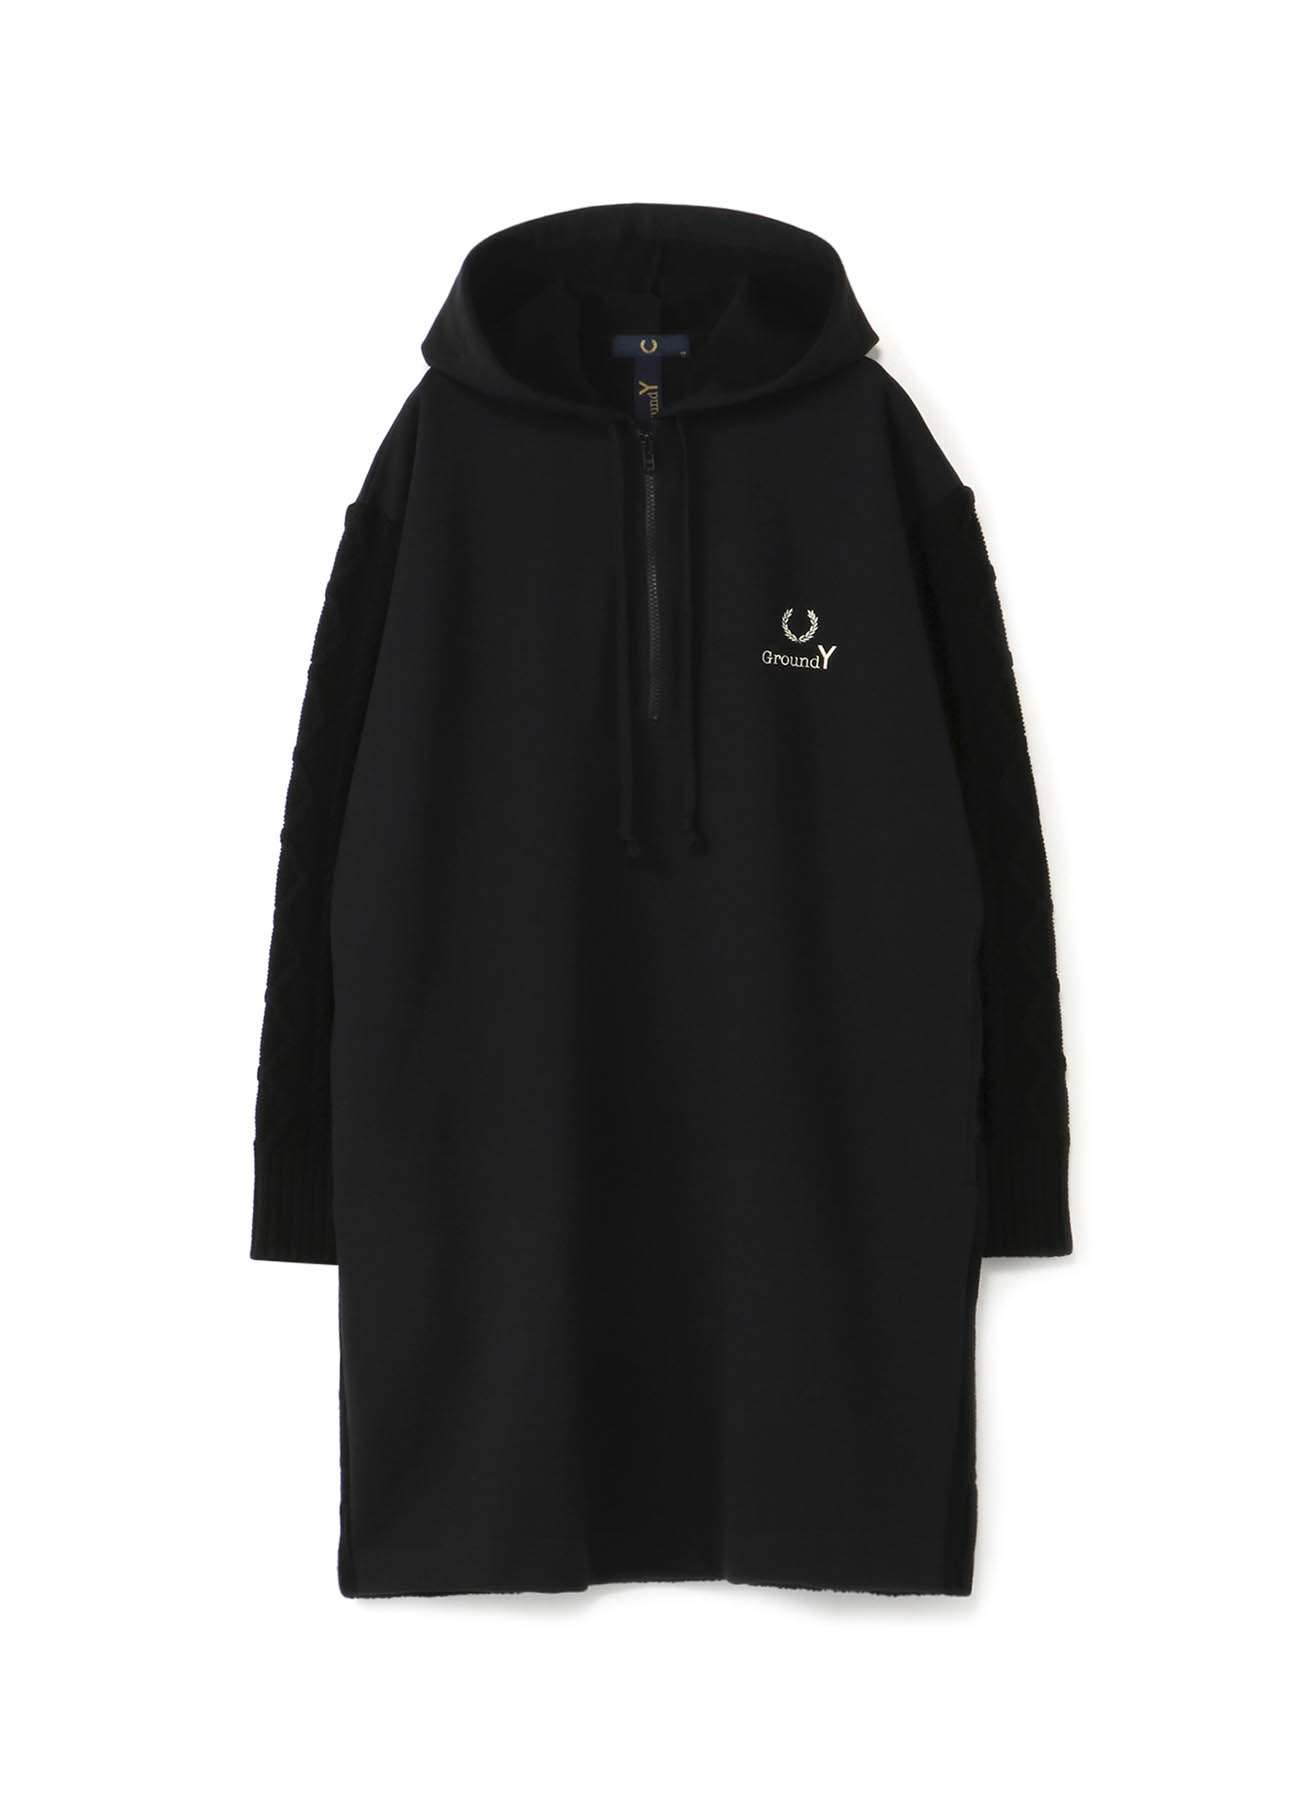 FRED PERRY collaboration ニット×裏毛 ロングパーカ(ウィメンズ)